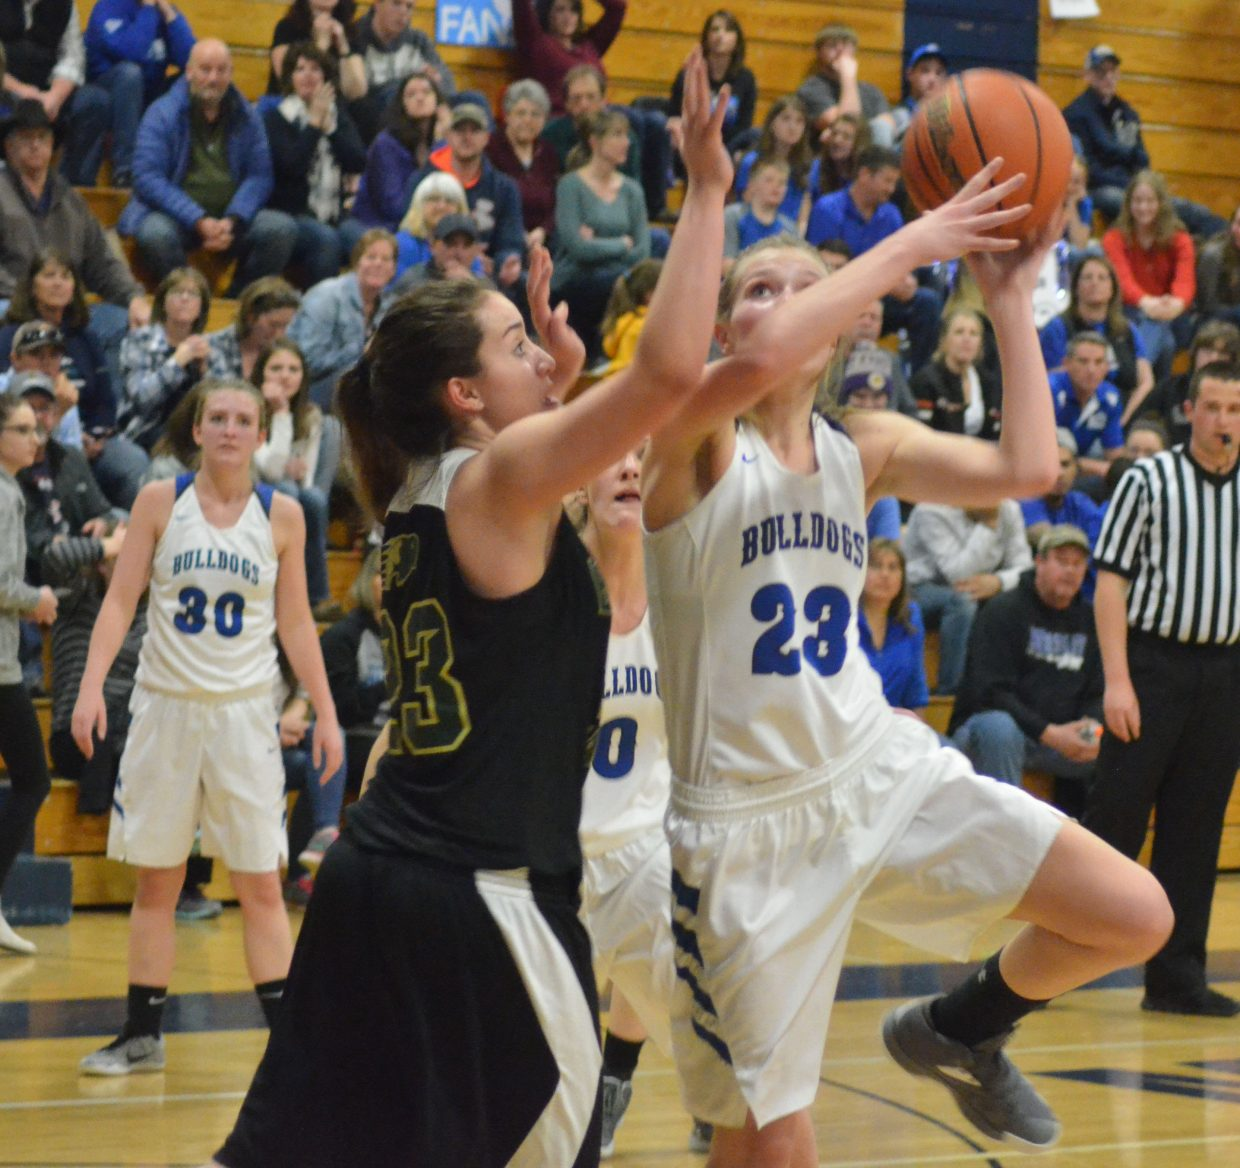 Moffat County High School's Jaci McDiffett angles for a shot against Bishop Machebeuf.